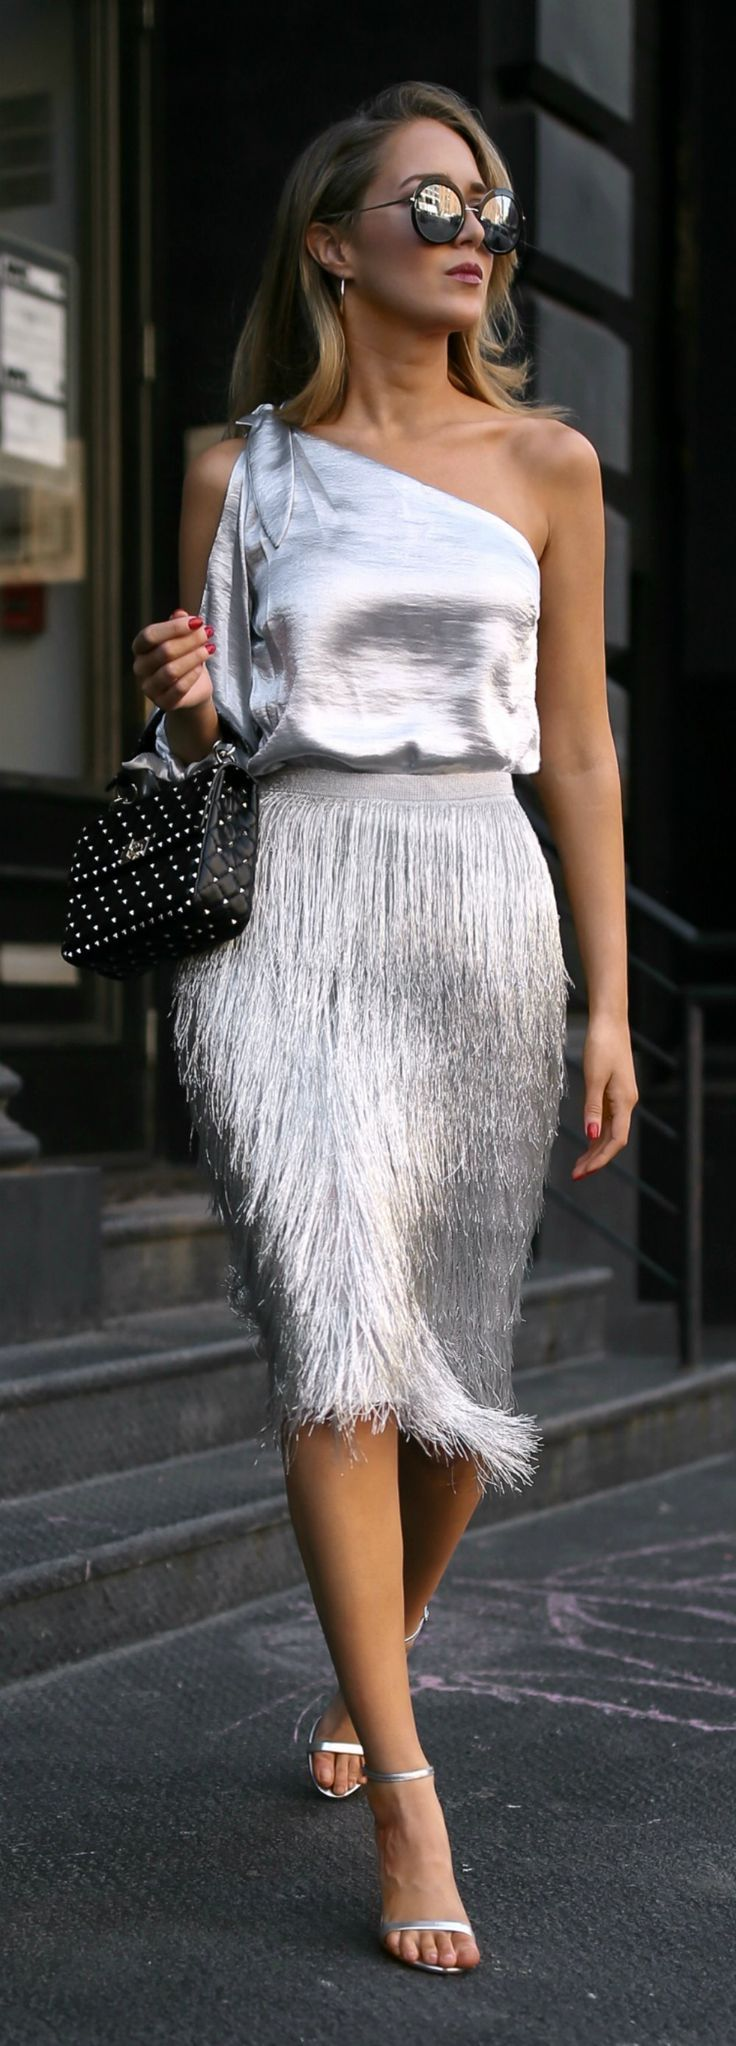 Click for outfit details!  One shoulder metallic blouse, metallic fringed midi skirt, studded black leather shoulder bag, round sunglasses and silver ankle-strap sandals {Valentino, Rachel Zoe, Rebecca Minkoff, Sunday Somewhere, Sam Edelman, fall trends, – MARY ORTON | MEMORANDUM